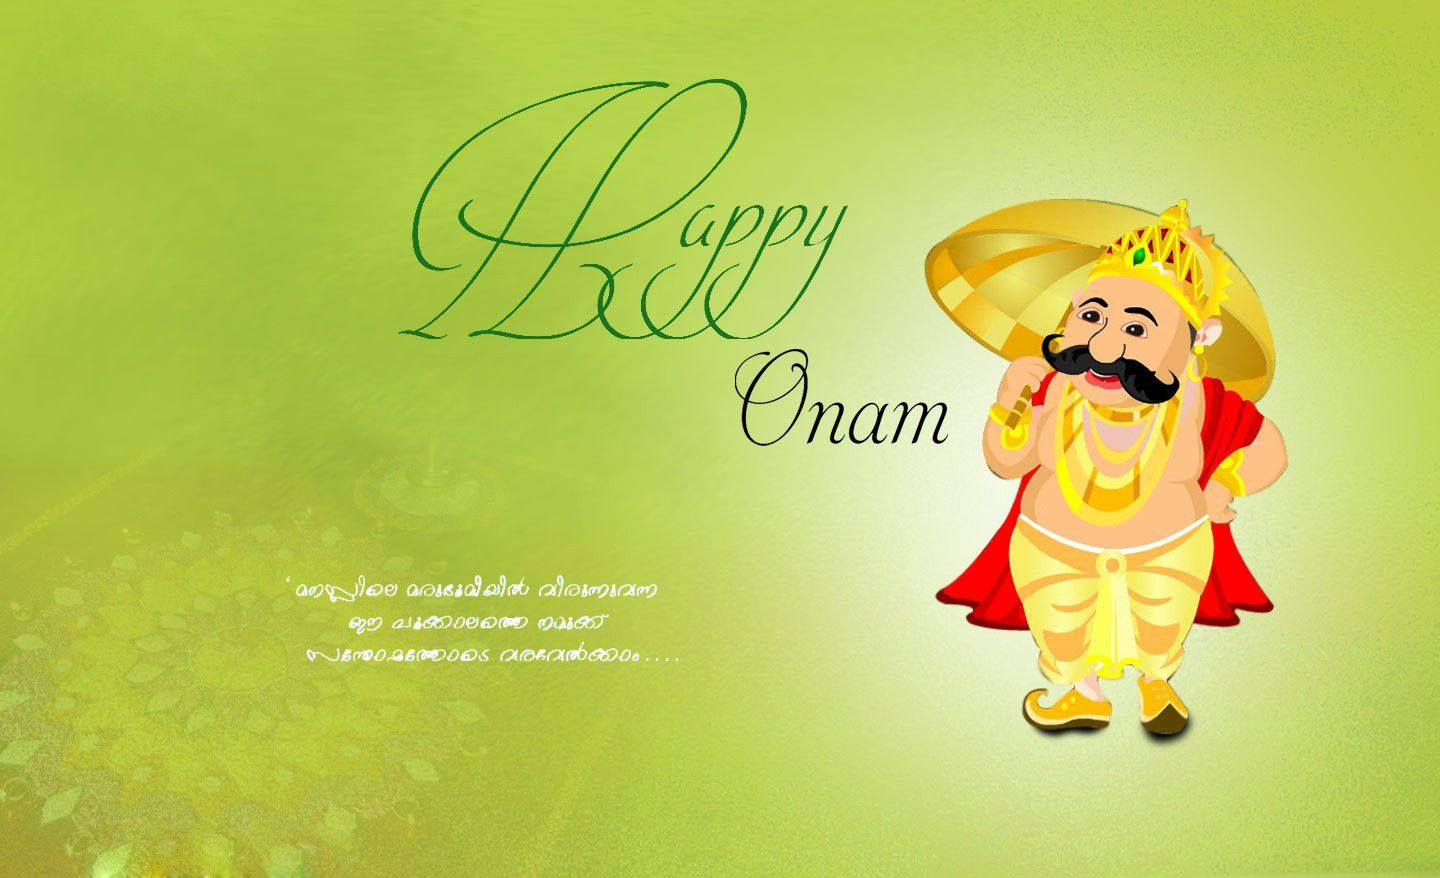 Free download 100 pure onam hd wallpapers latest photoshoots free download 100 pure onam hd wallpapers latest photoshoots beautiful images and more kristyandbryce Image collections